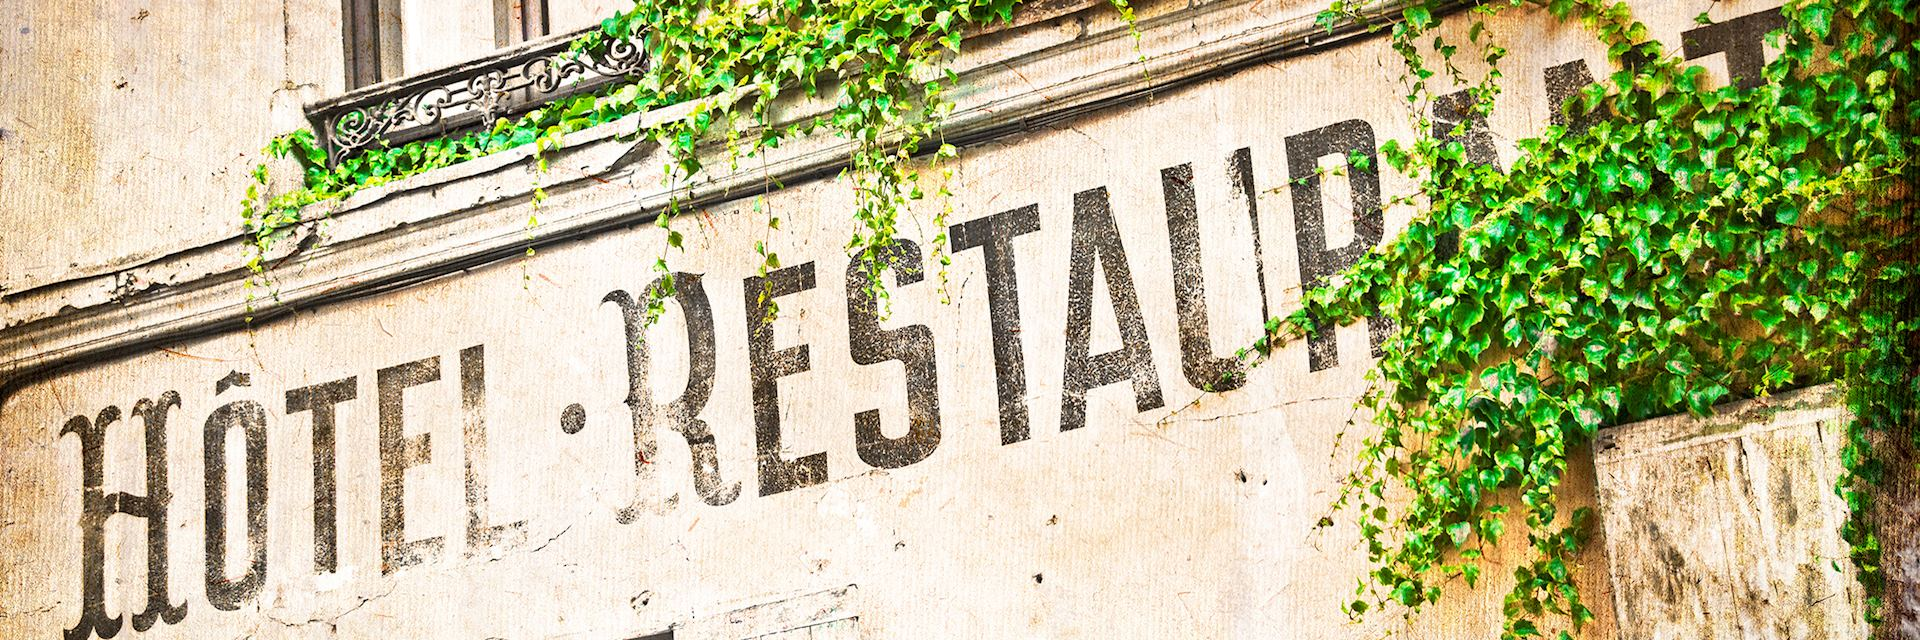 Vintage French hotel facade